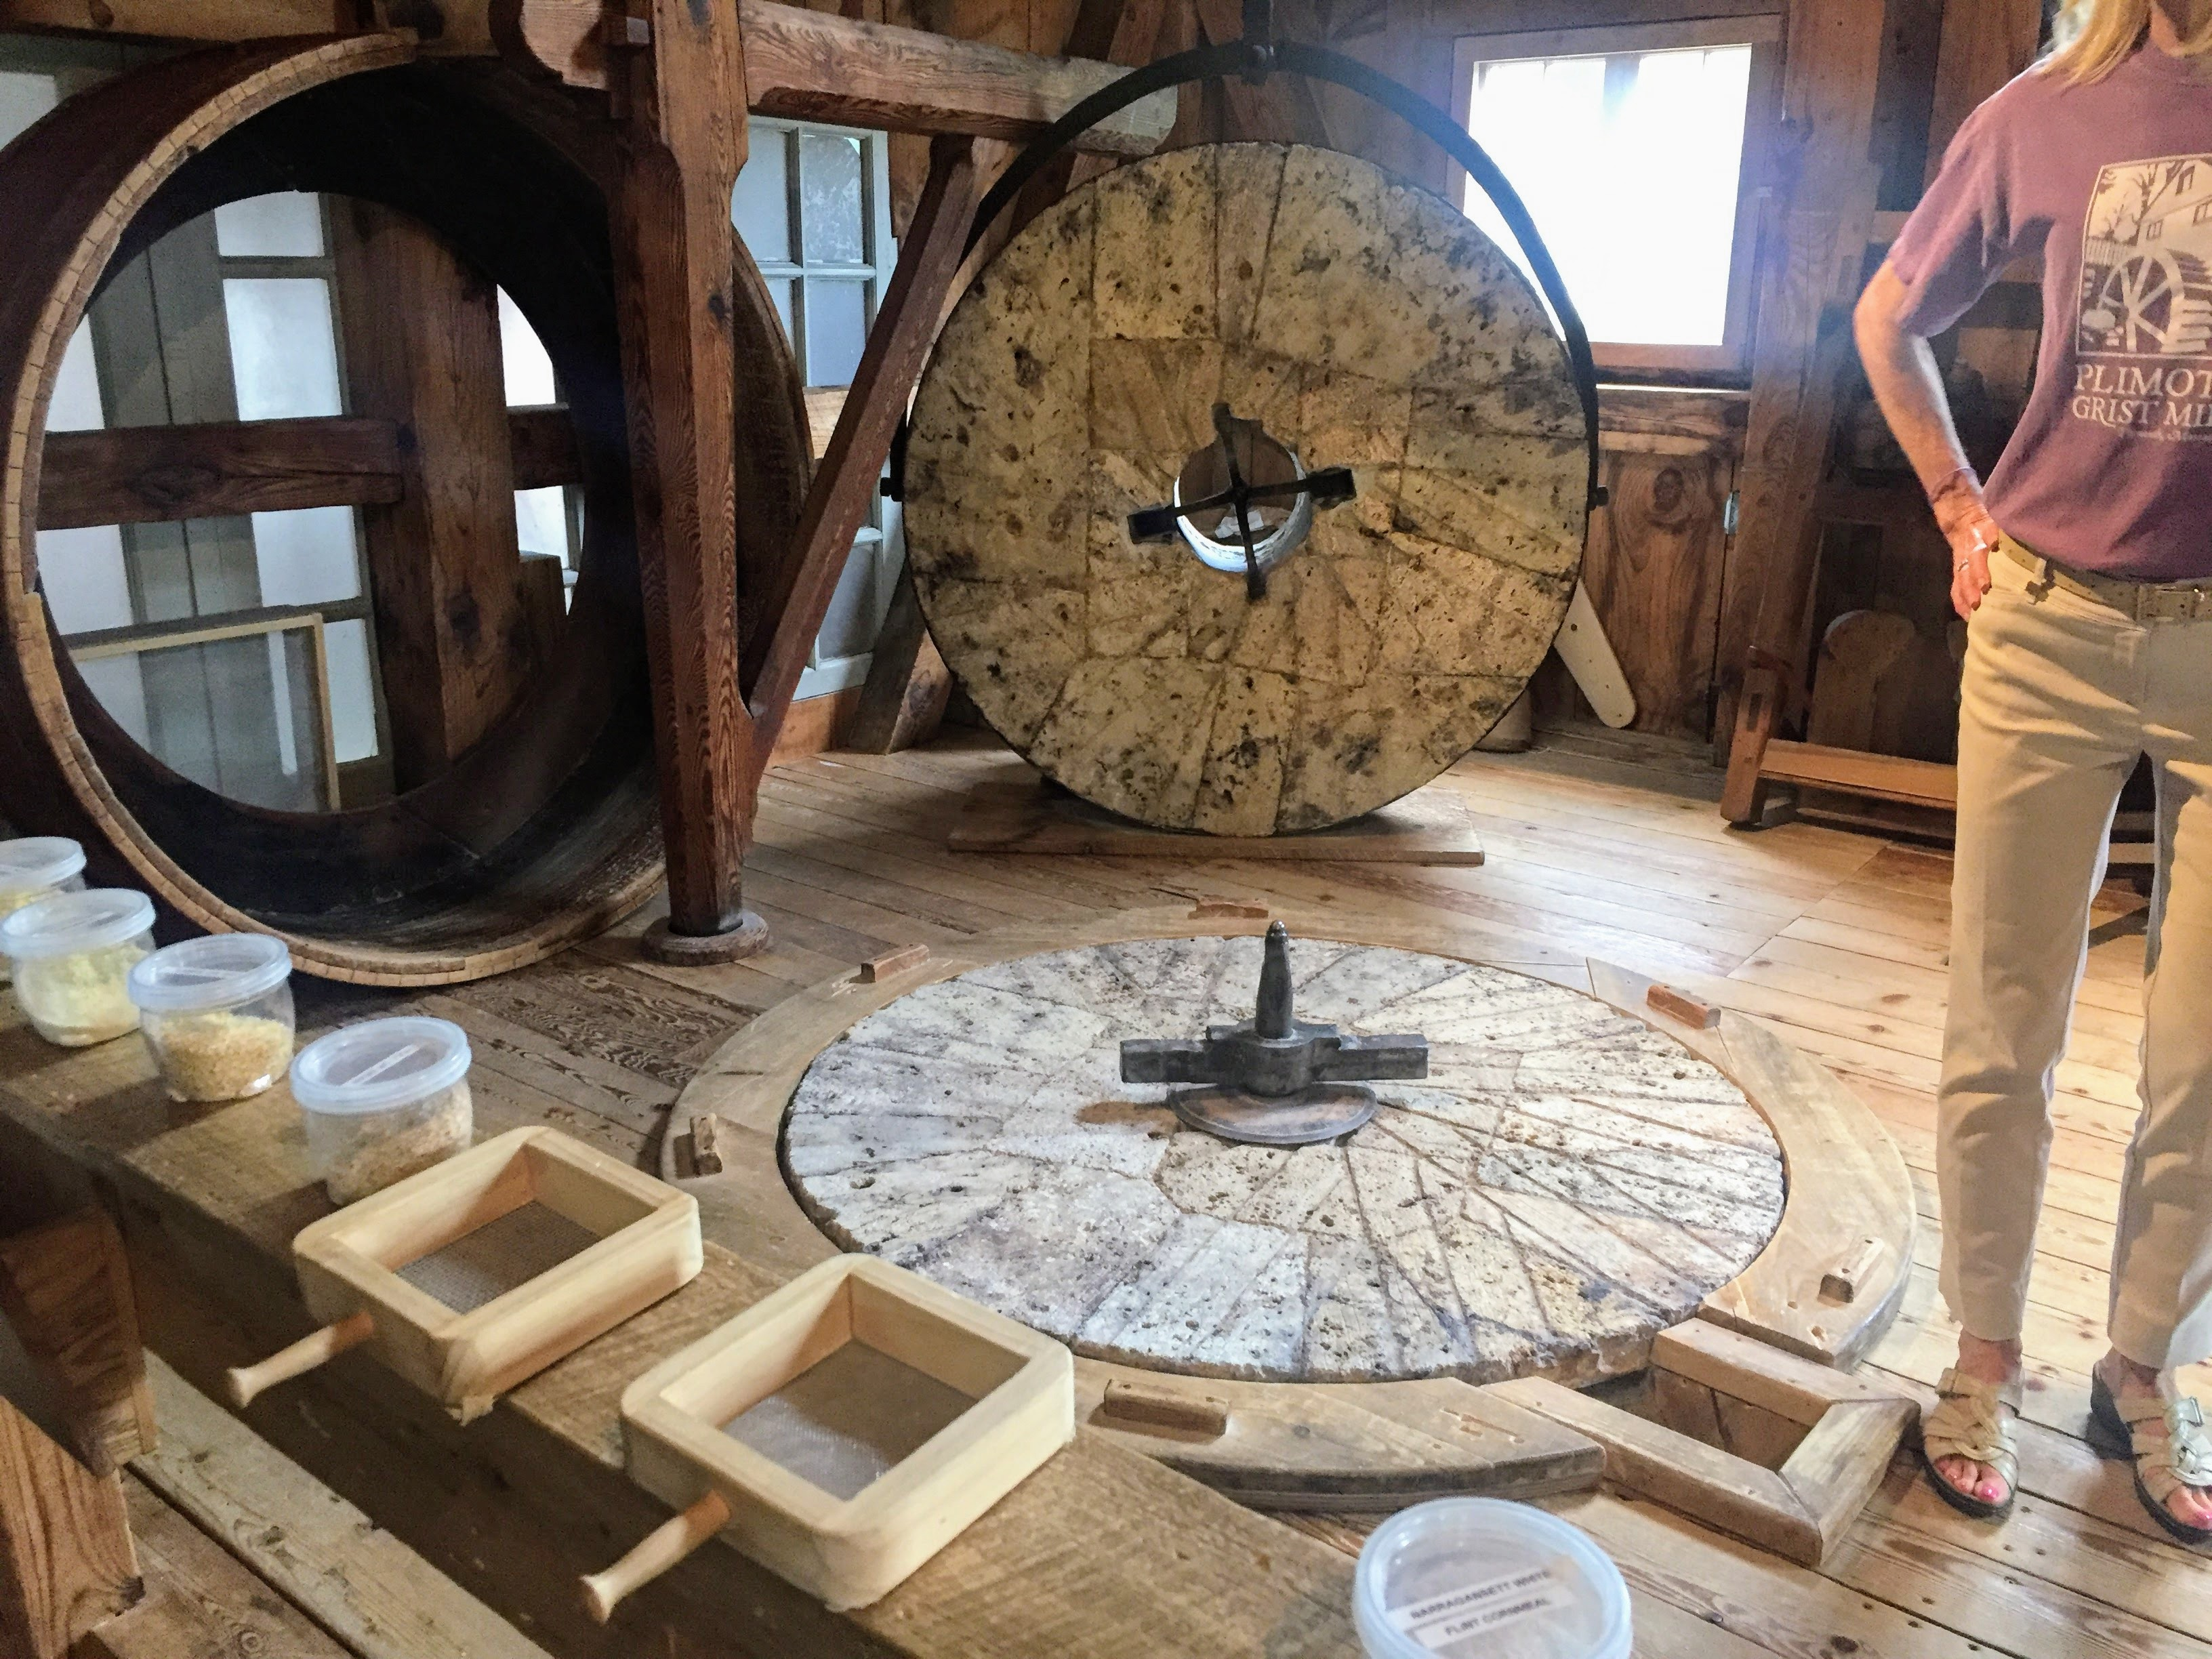 2017-07-13 Grist Mill 04